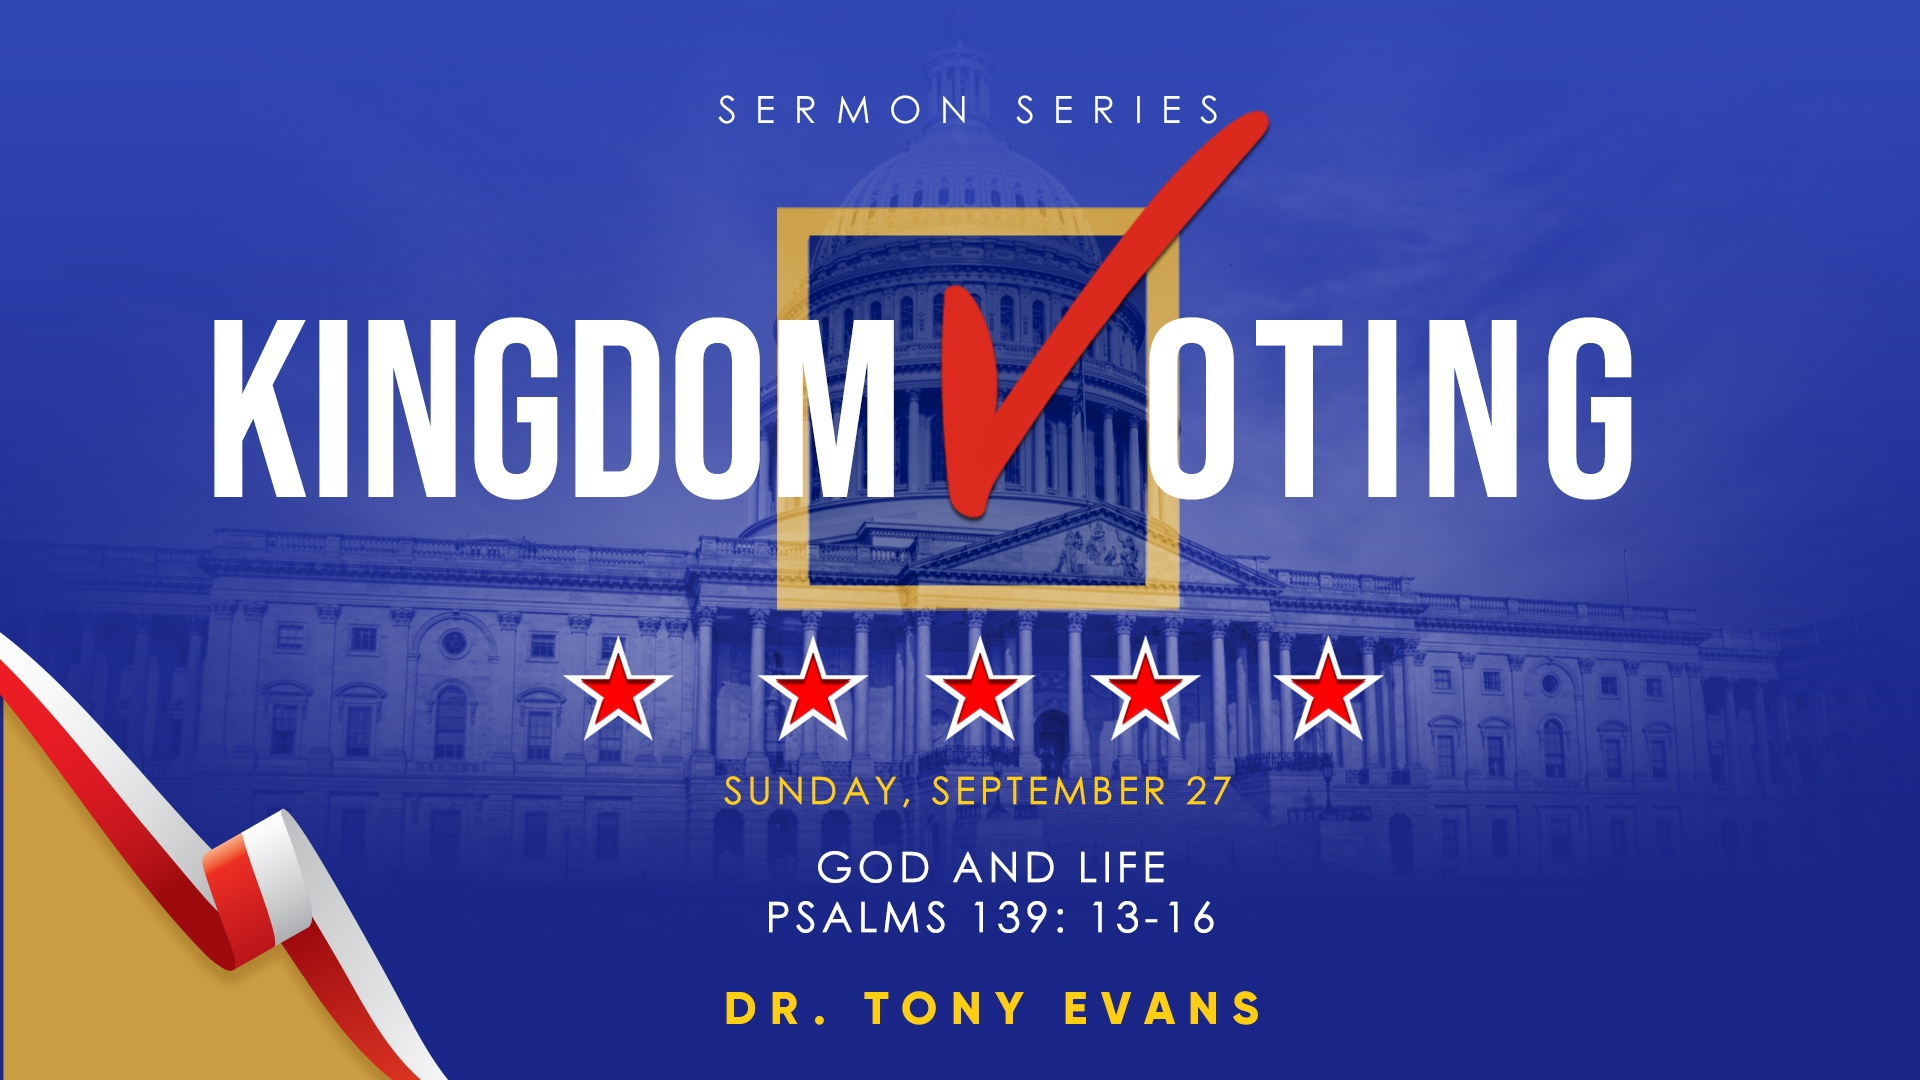 Kingdom voting: God and life by Dr. Tony Evans